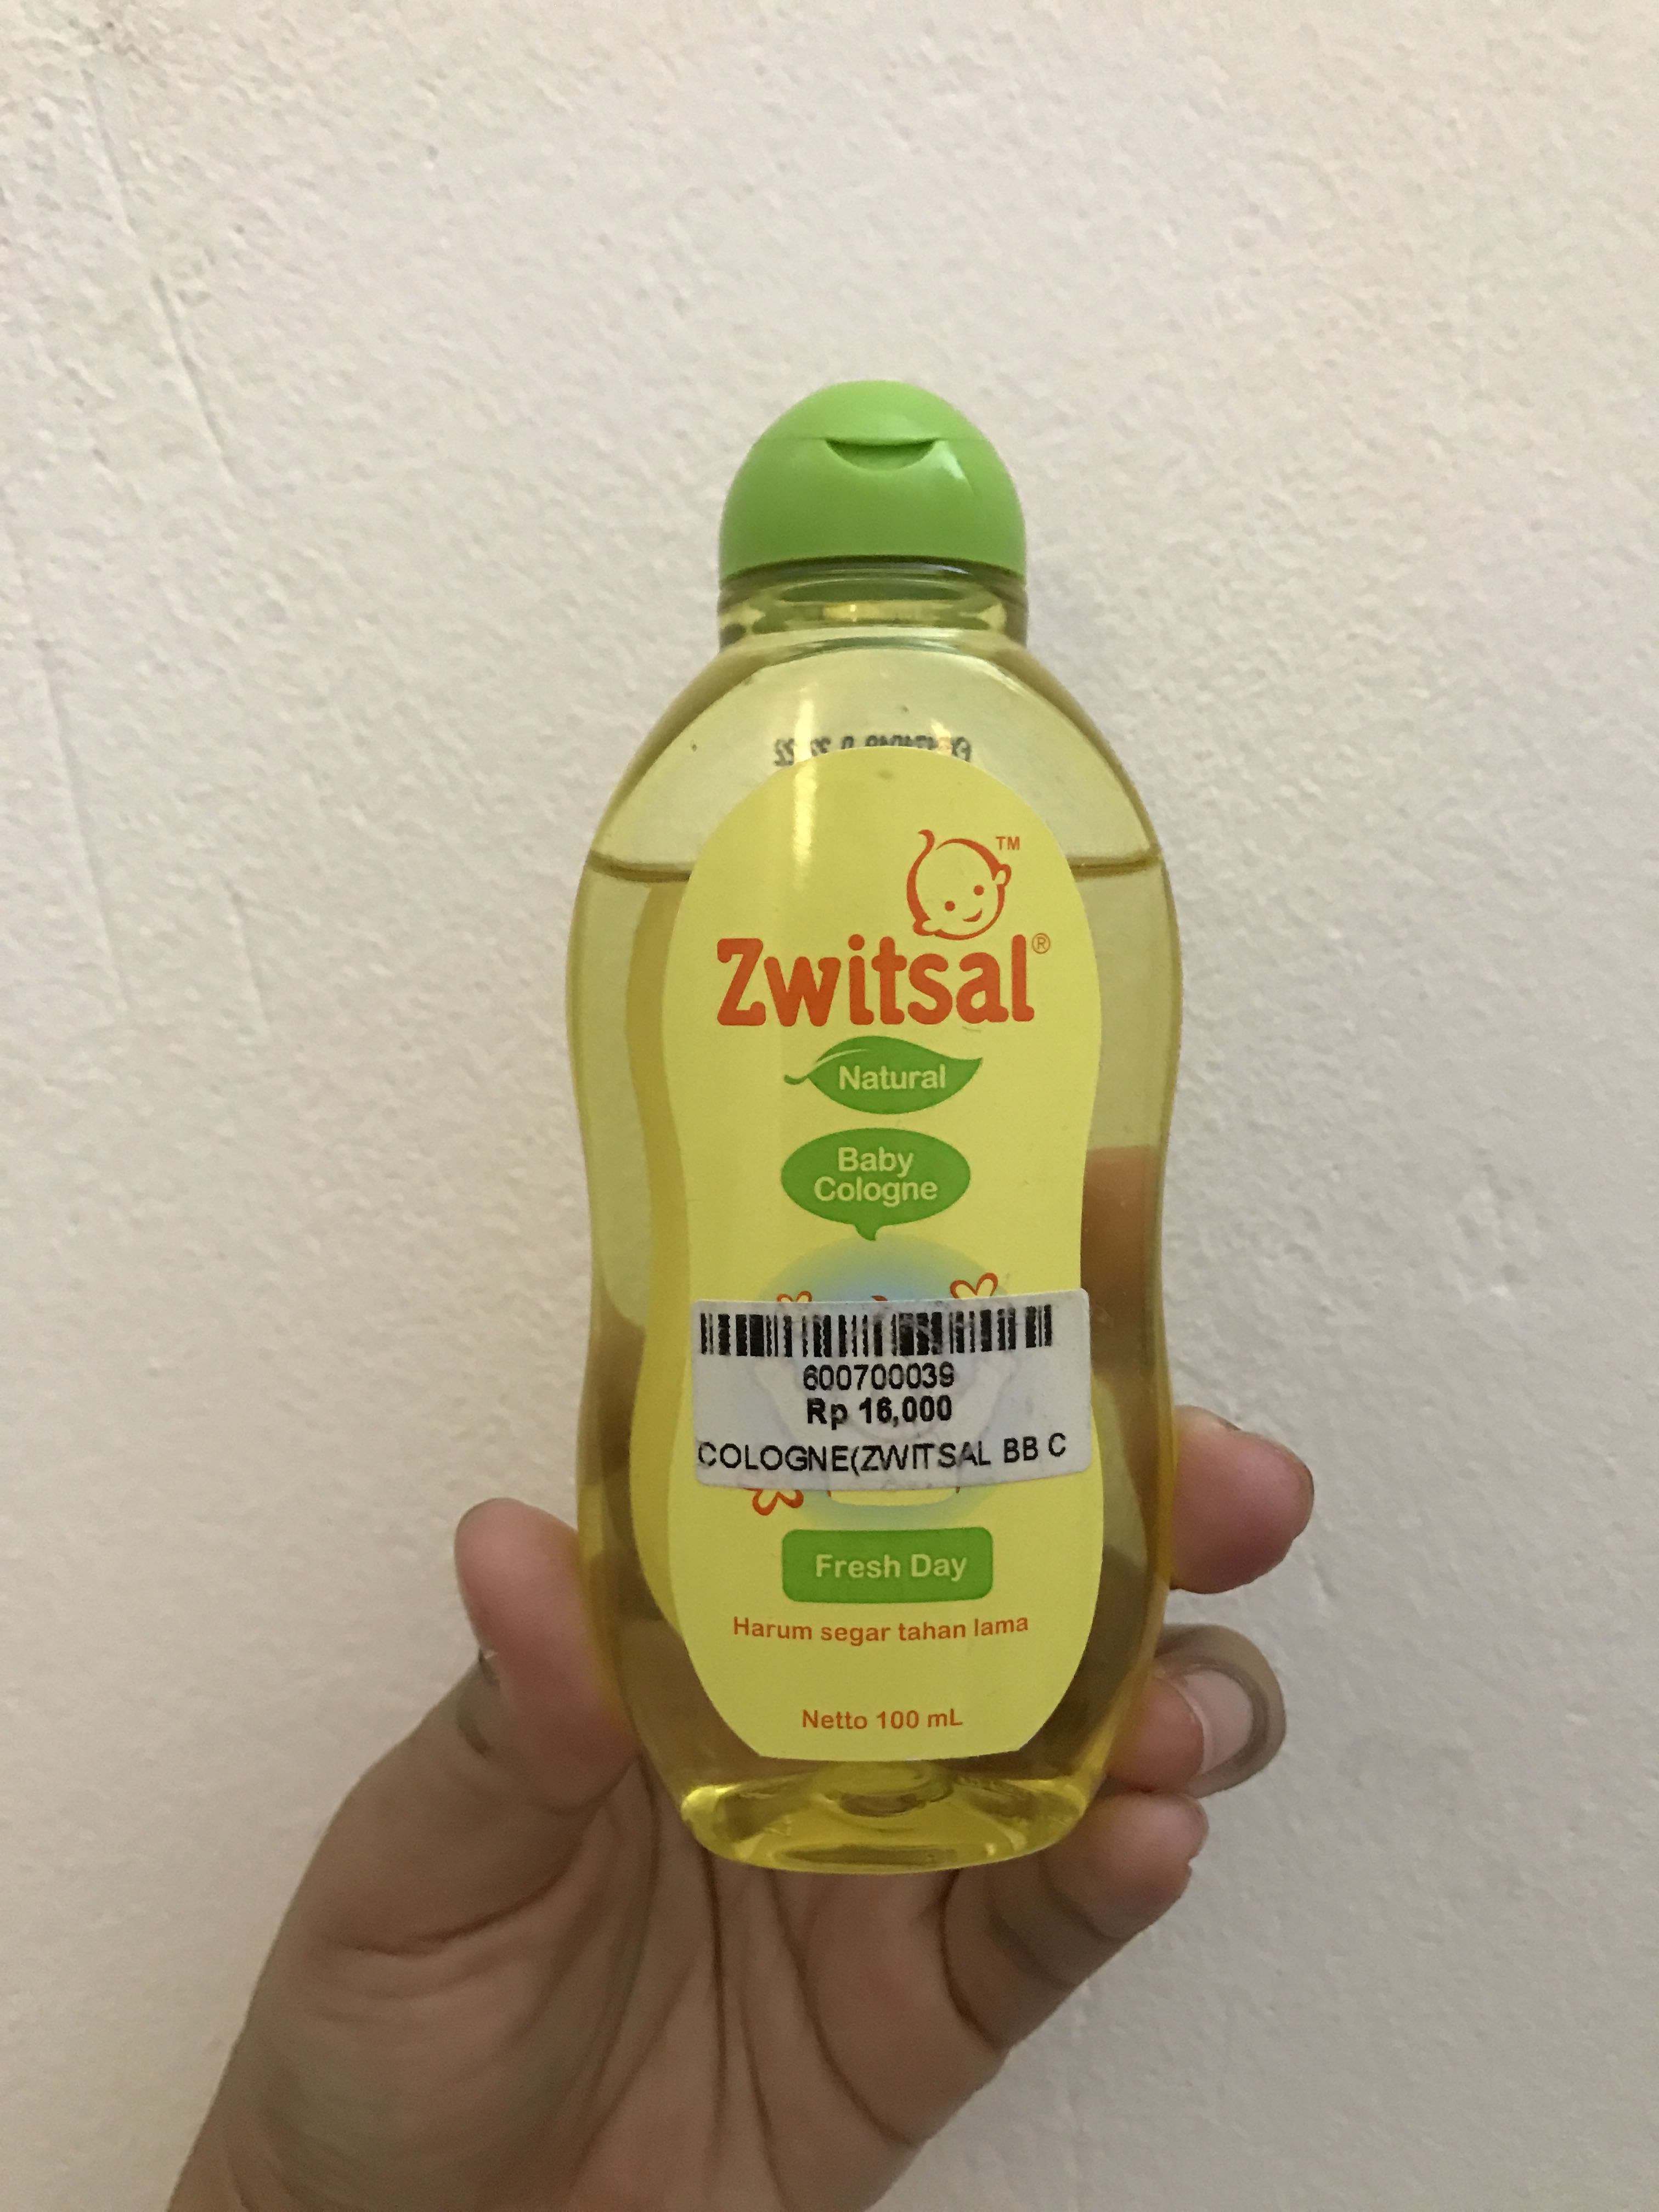 Zwitsal Baby Cologne Natural Fresh Day 100ml Zbb0305 Daftar Harga Classic Photo